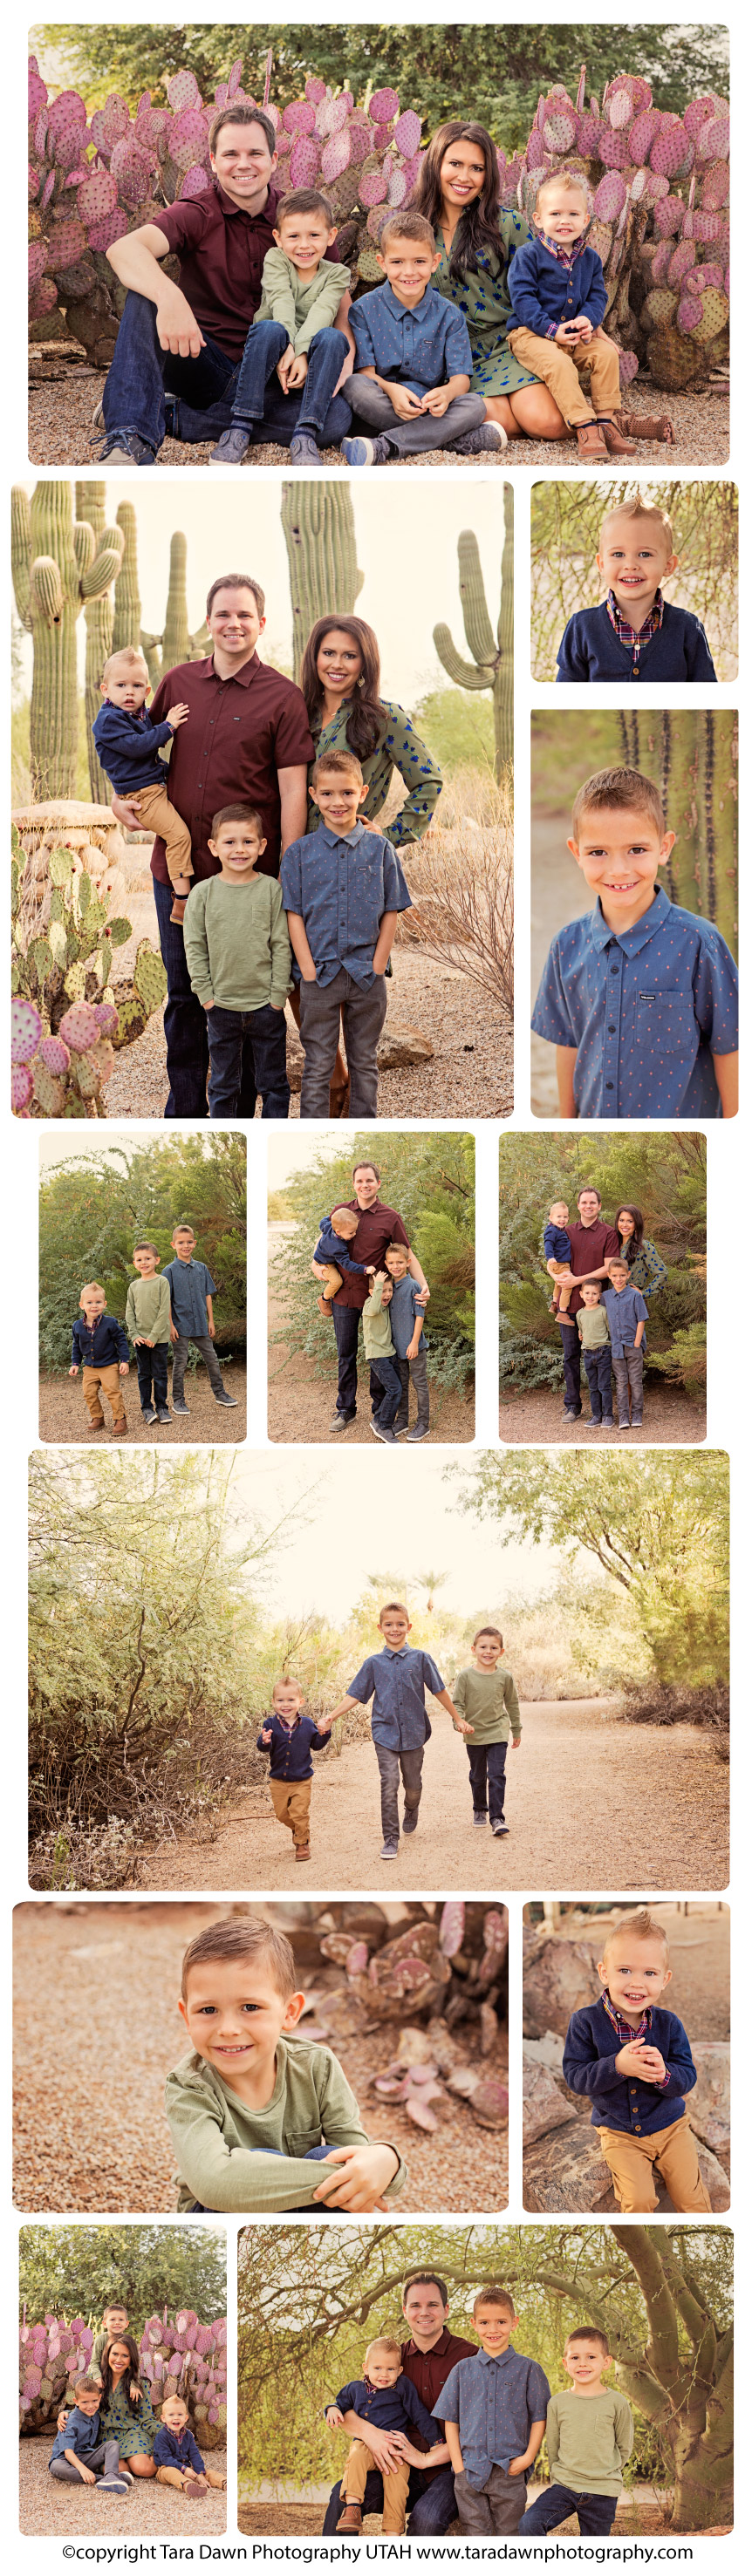 utah_family_photography_westvalley